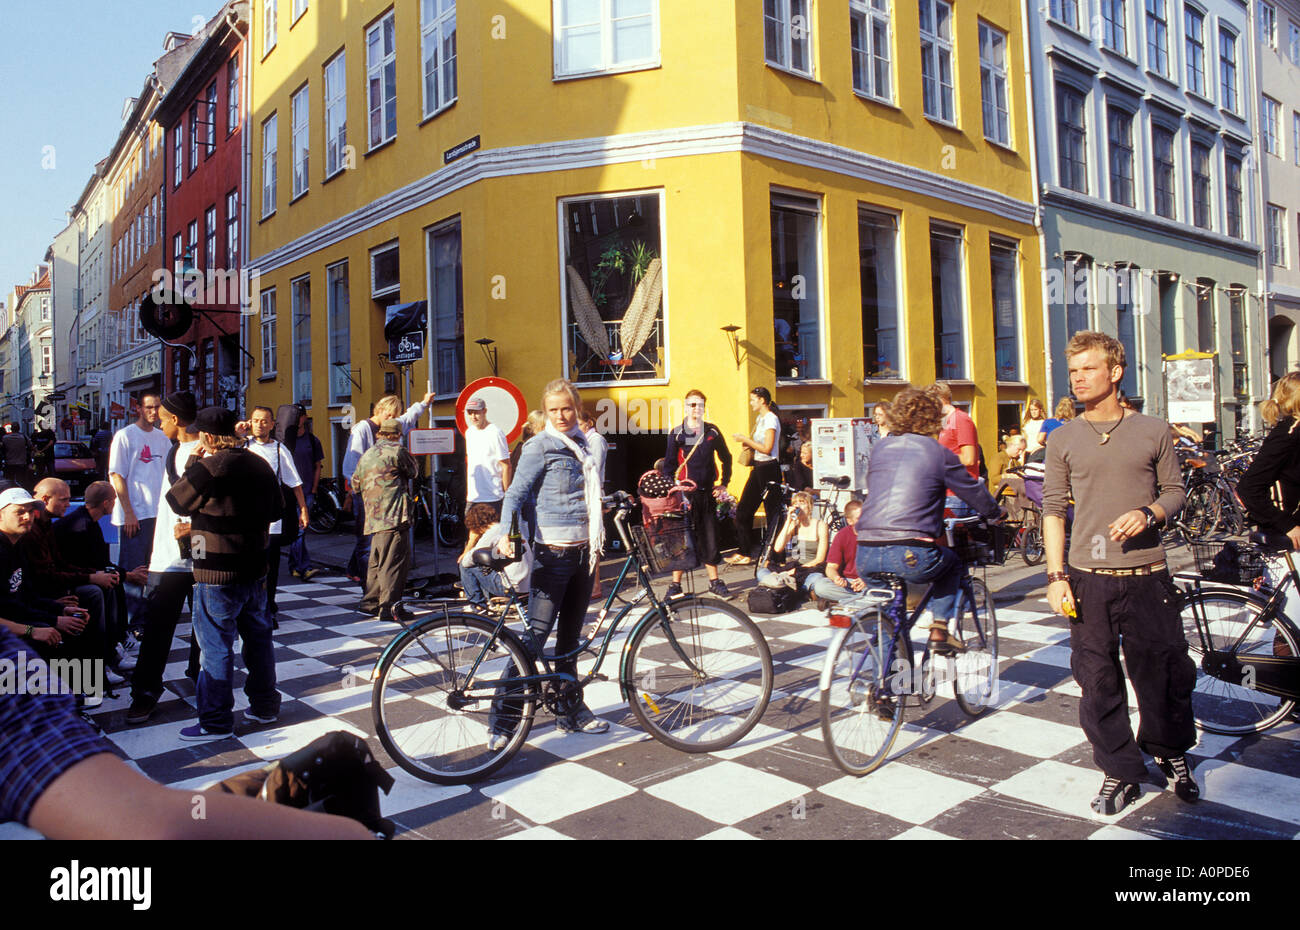 copenhagen hispanic single men Free to join & browse - 1000's of black men in copenhagen, kobenhavn - interracial dating, relationships & marriage with guys & males online.